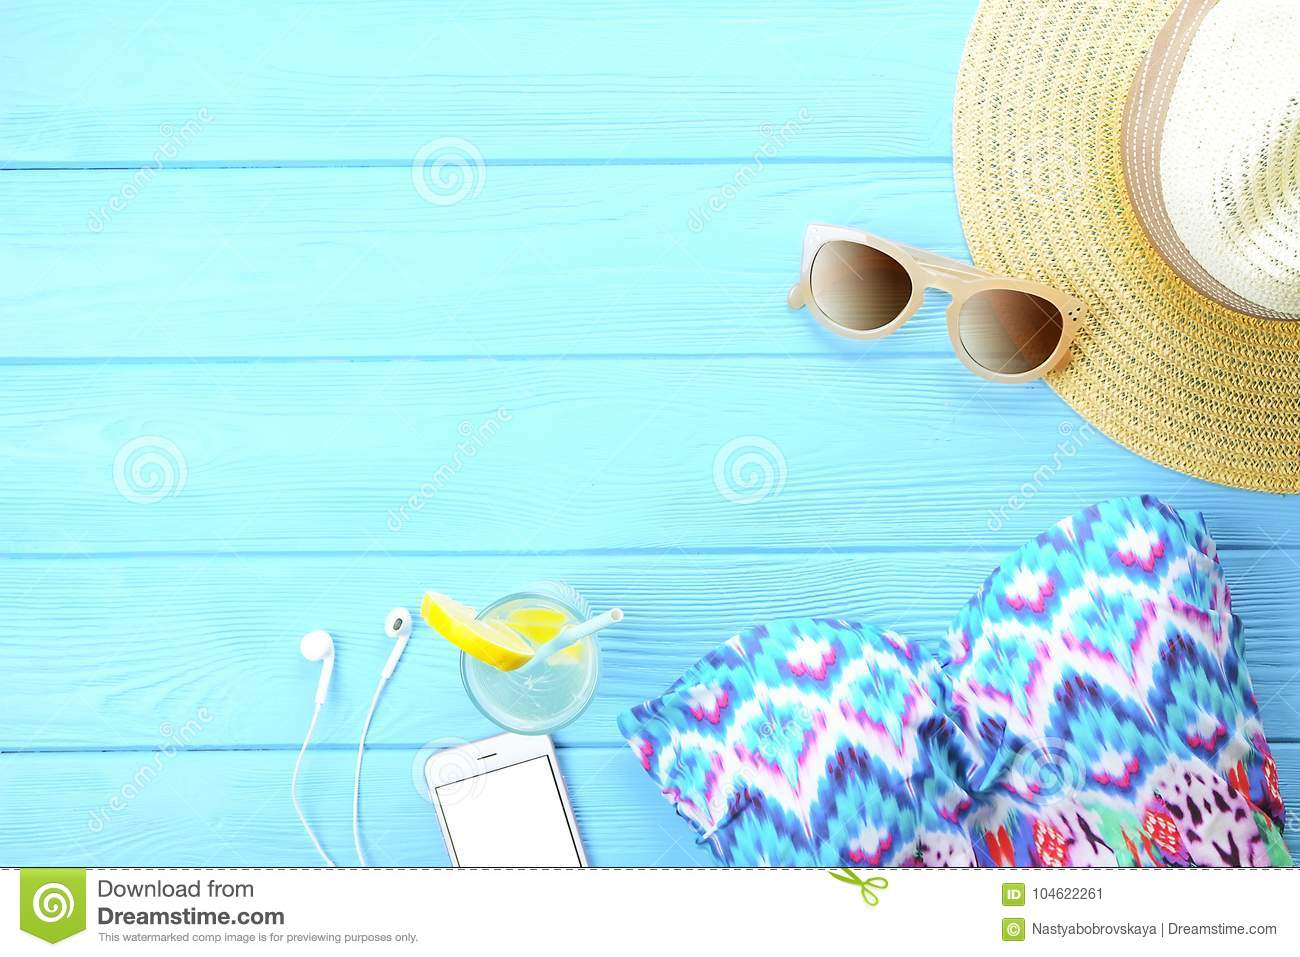 Female beach accessories and phone on wooden background. Top view of trendy woman`s summer holidays accessories. Beach summer fash